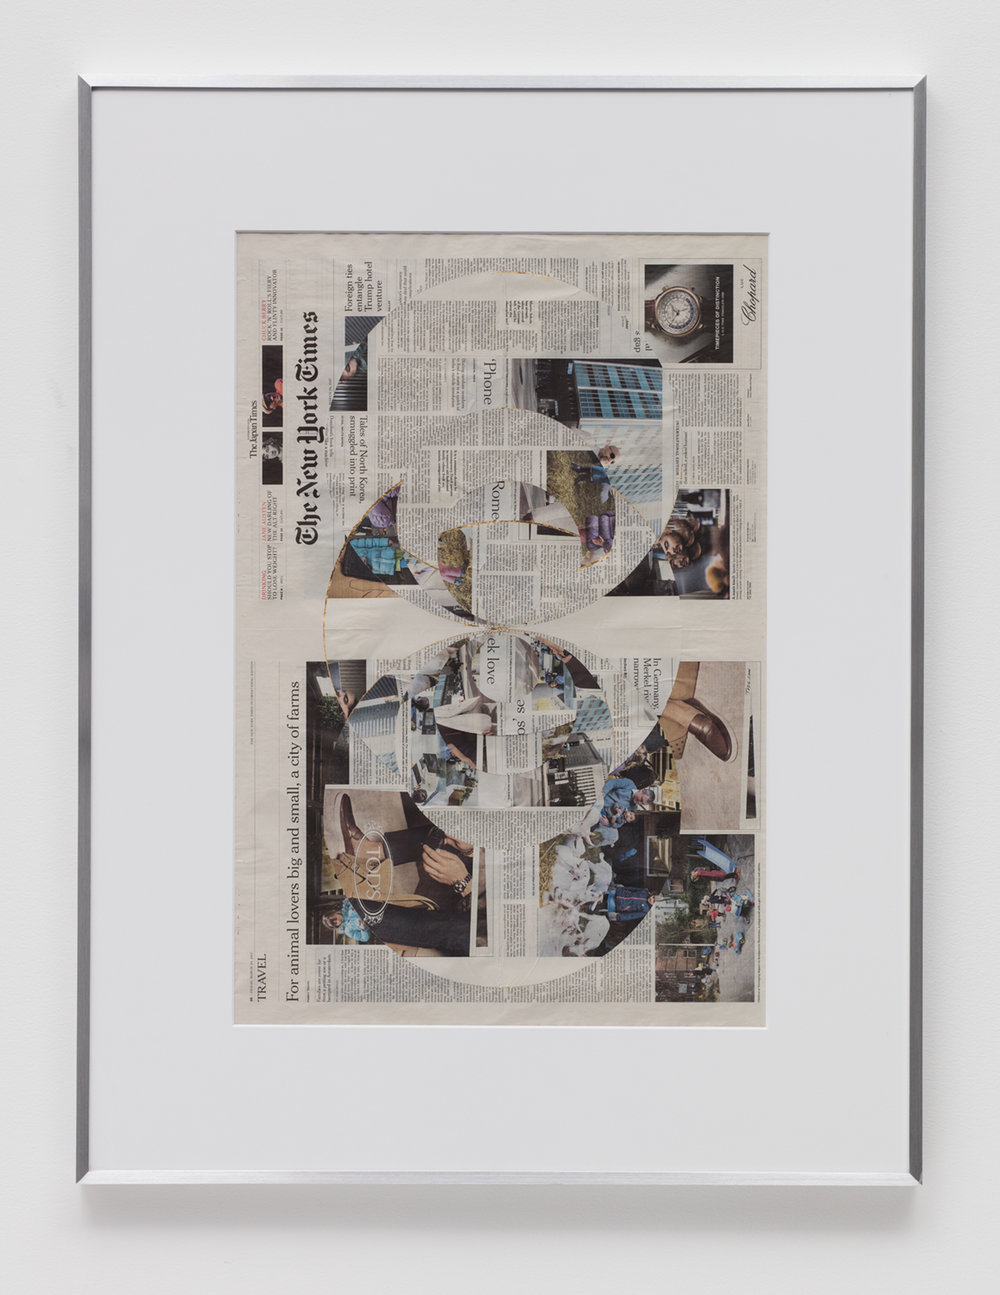 Blind Collage (Four 180º Rotations, The New York Times International Edition, Distributed with The Japan Times, Friday, March 24, 2017)    2017   Newspaper, tape, and 22 karat gold leaf  43 5/8 x 33 1/8 inches   Blind Collages, 2017–